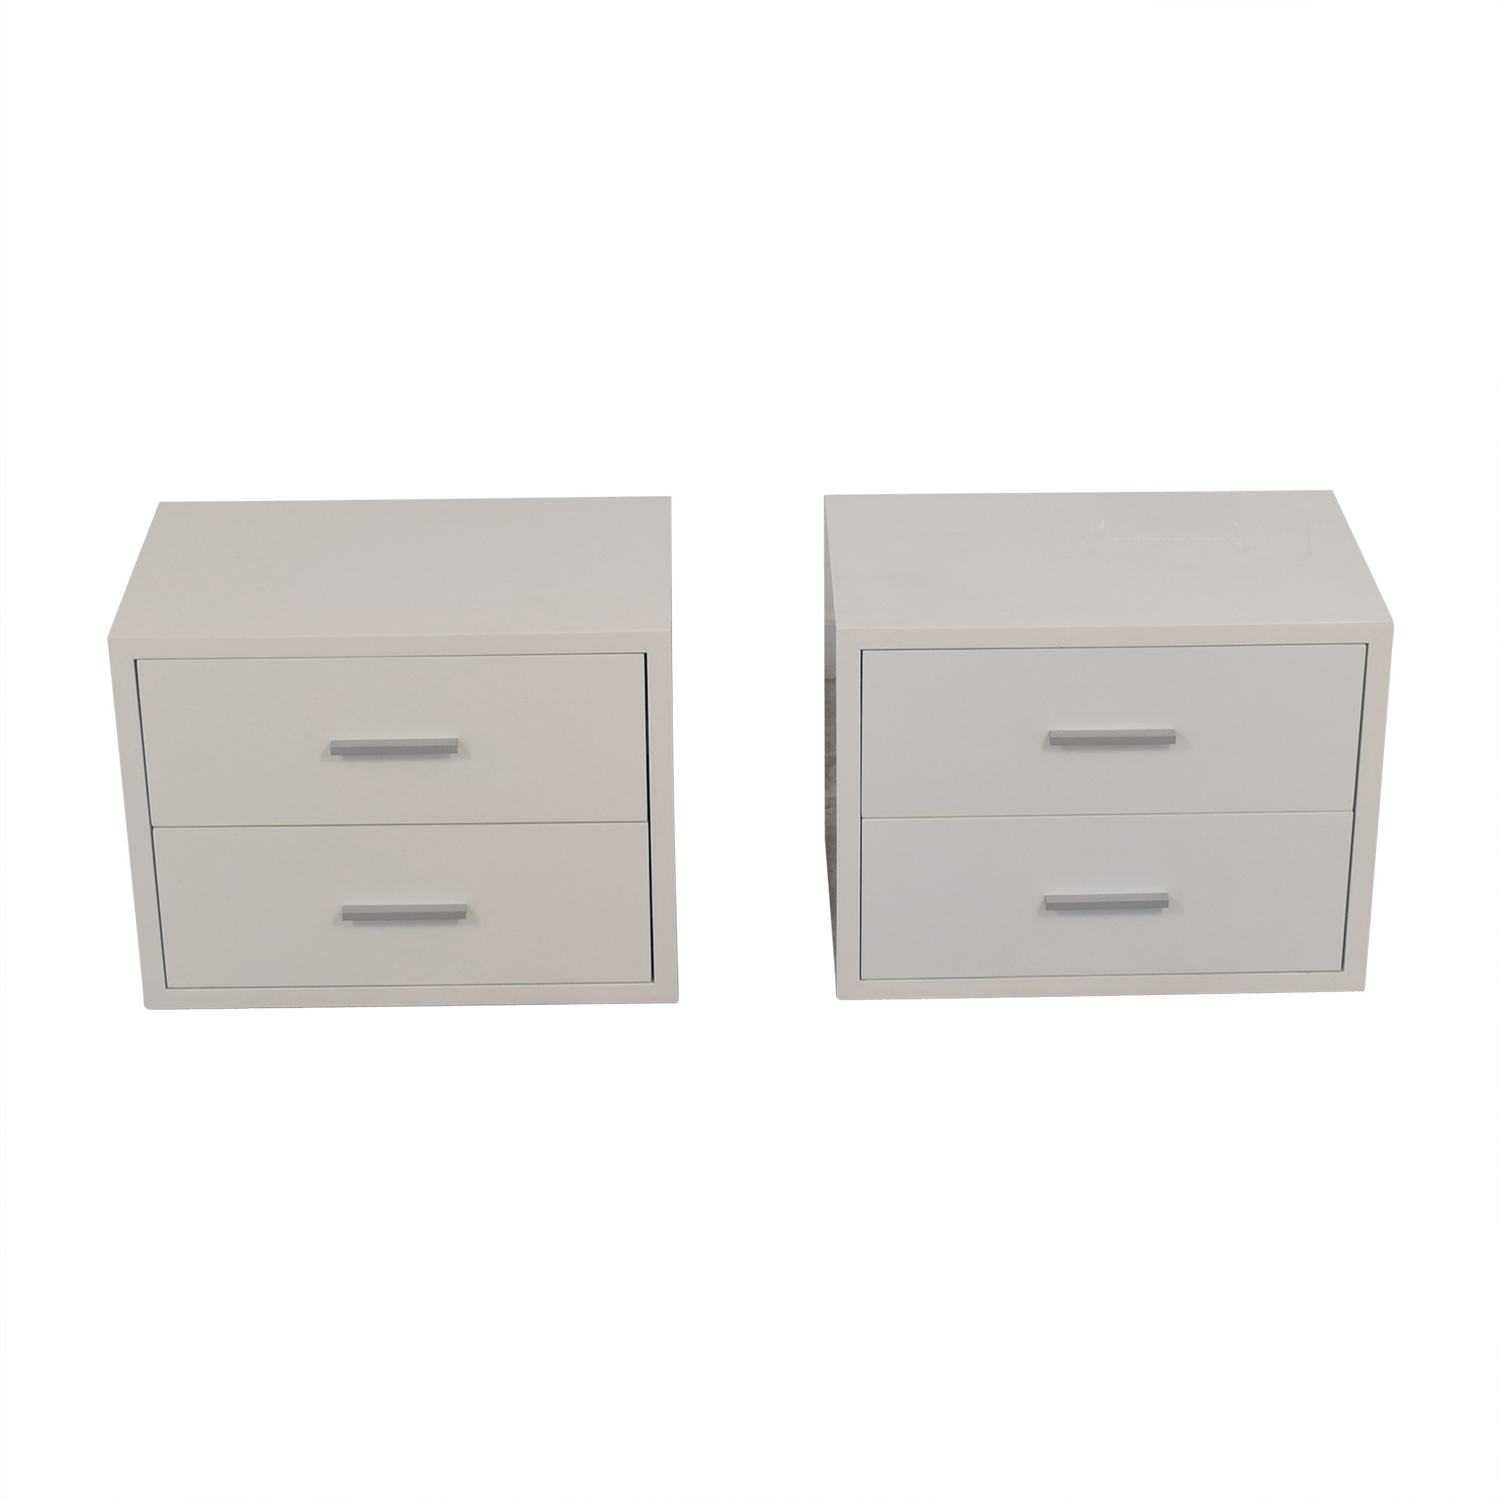 Modani Modani Vito White Two-Drawer Night Stands second hand